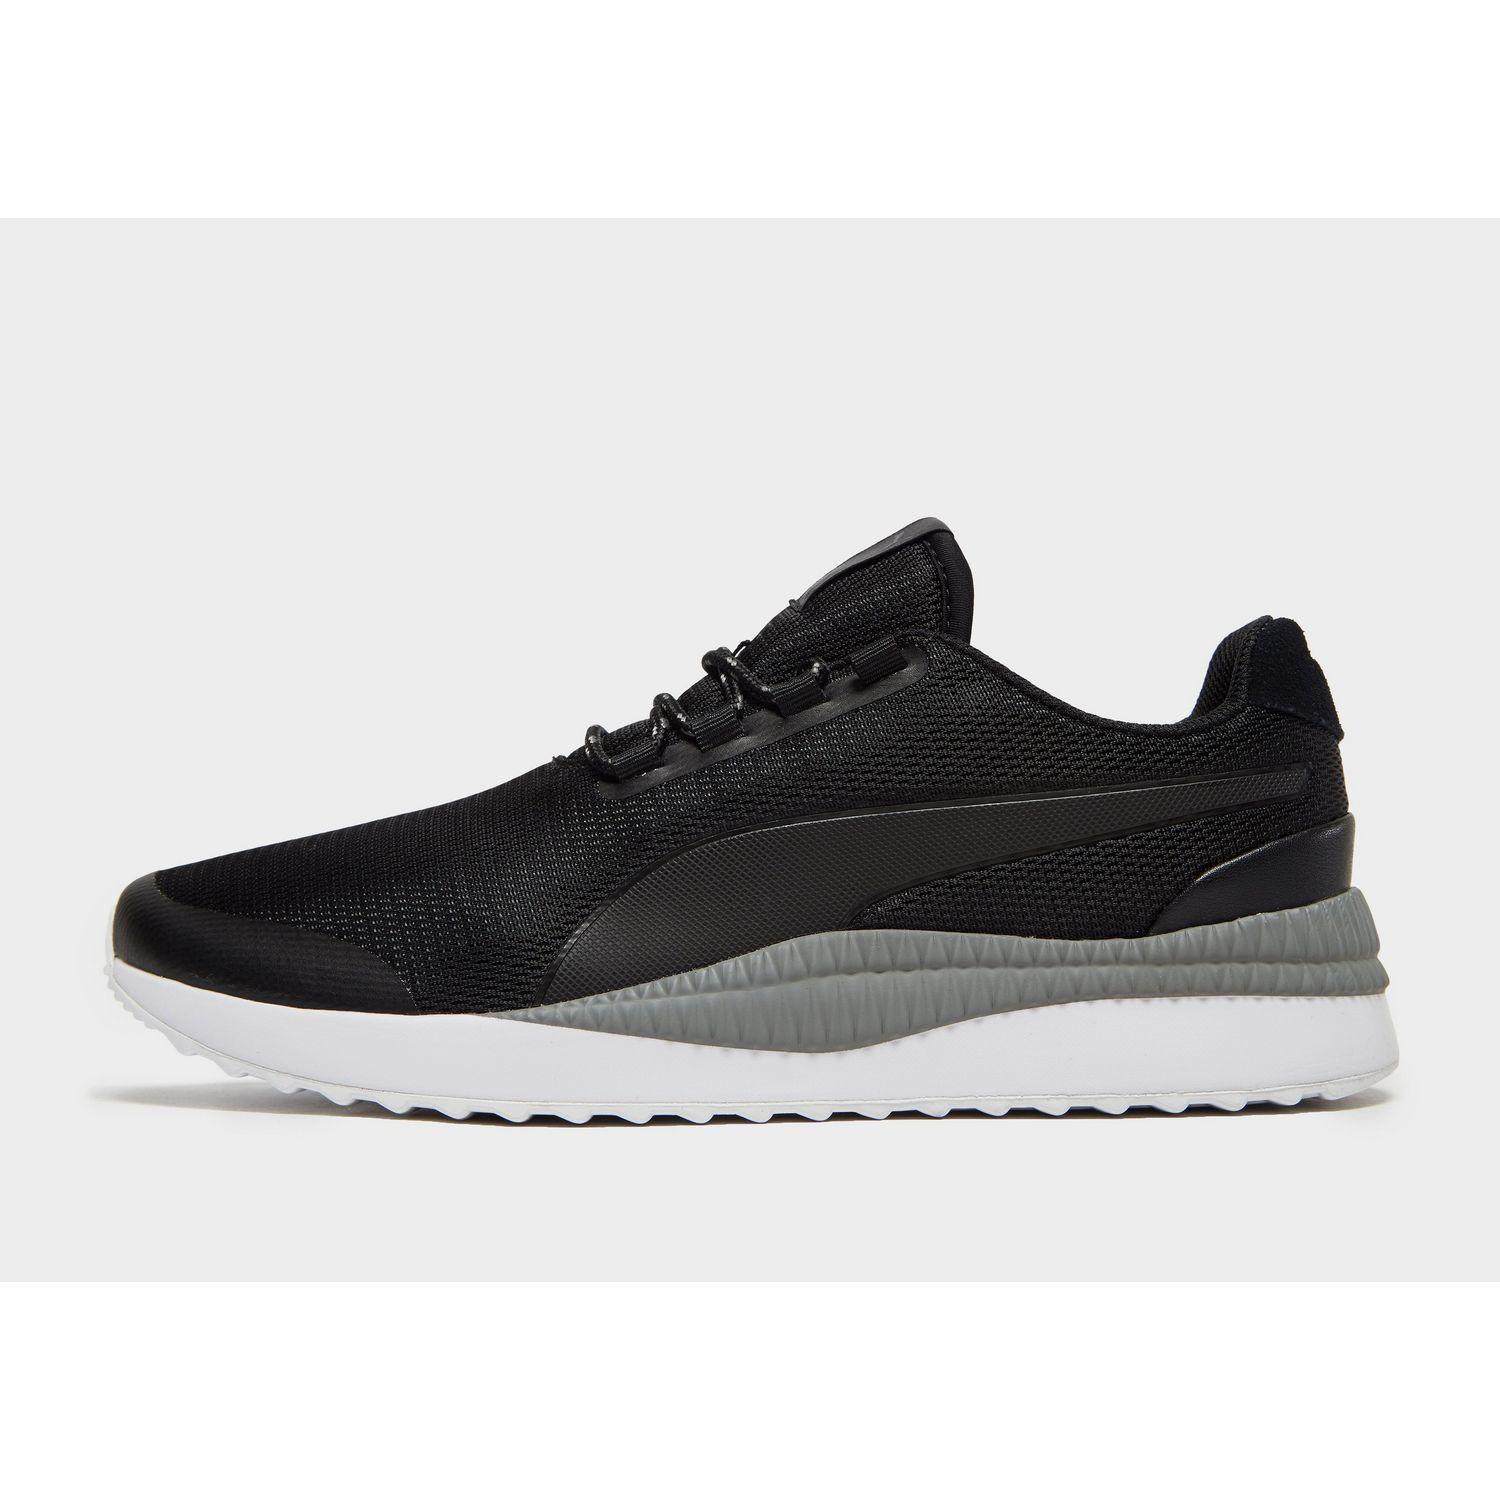 Lyst - PUMA Pacer Next Fs in Black for Men - Save 15% 8fd0343ca